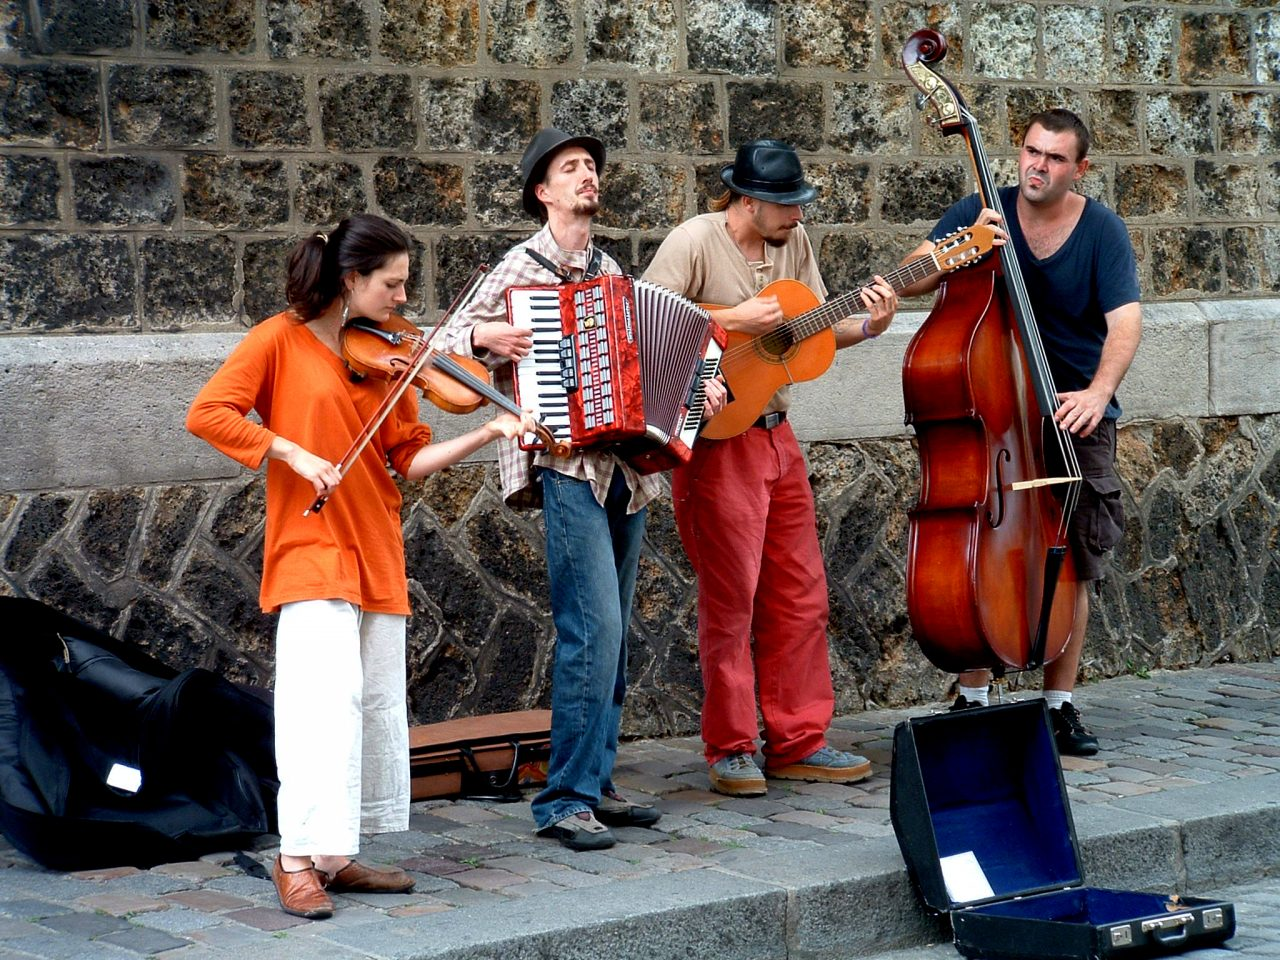 Music_band_in_Montmartre-1280x960.jpg